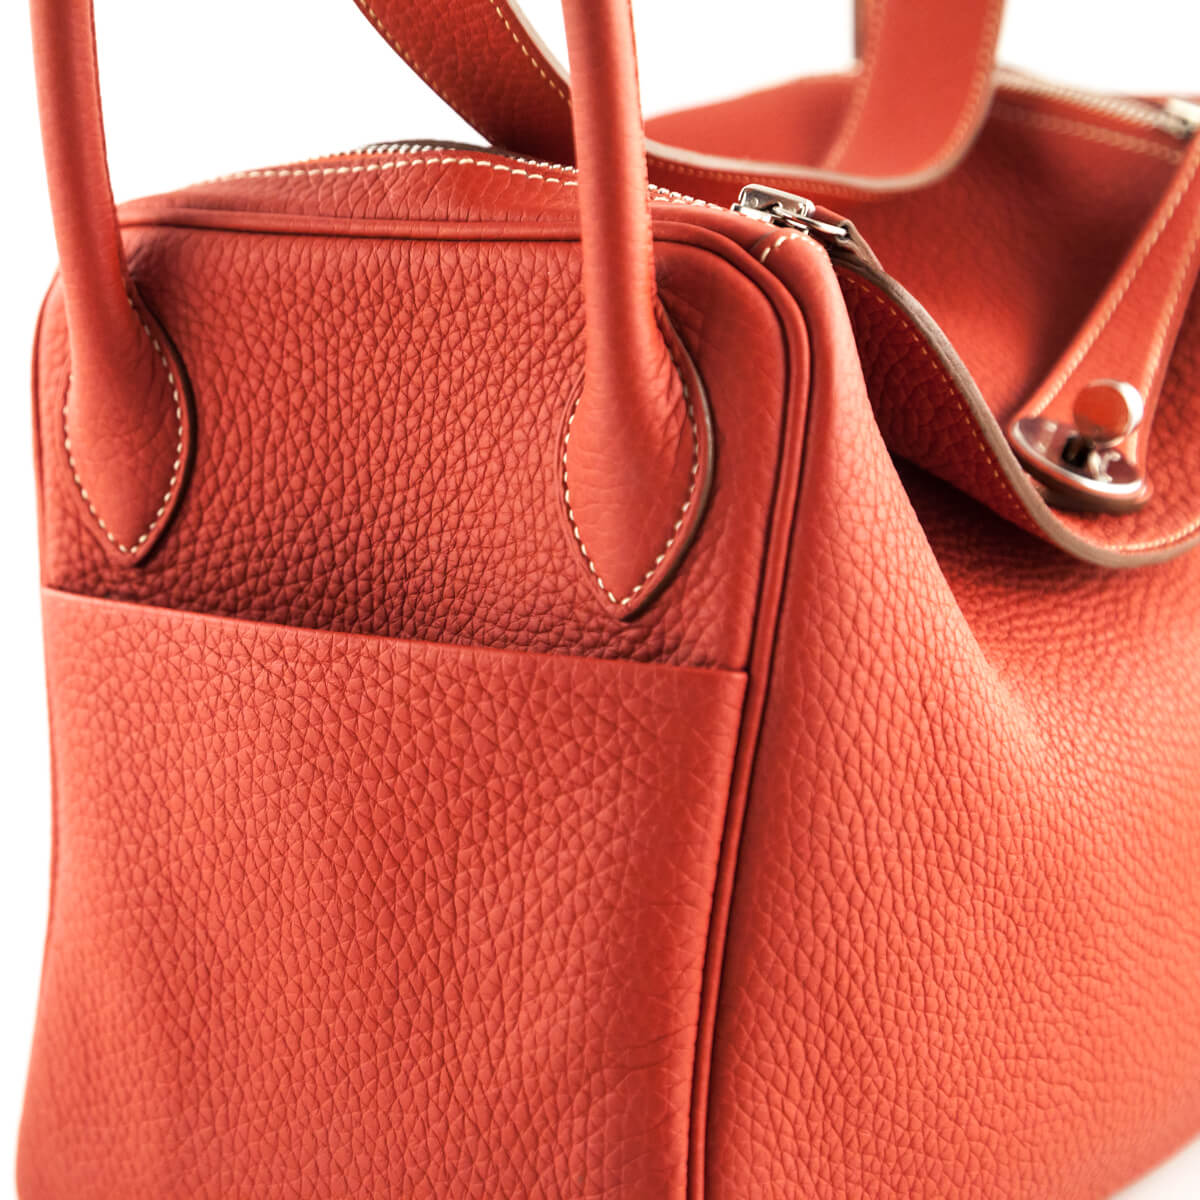 ... 50% off togo gold hardware hermes rouge pivoine clemence lindy 30 love  that bag preowned ... c0adc87745d90